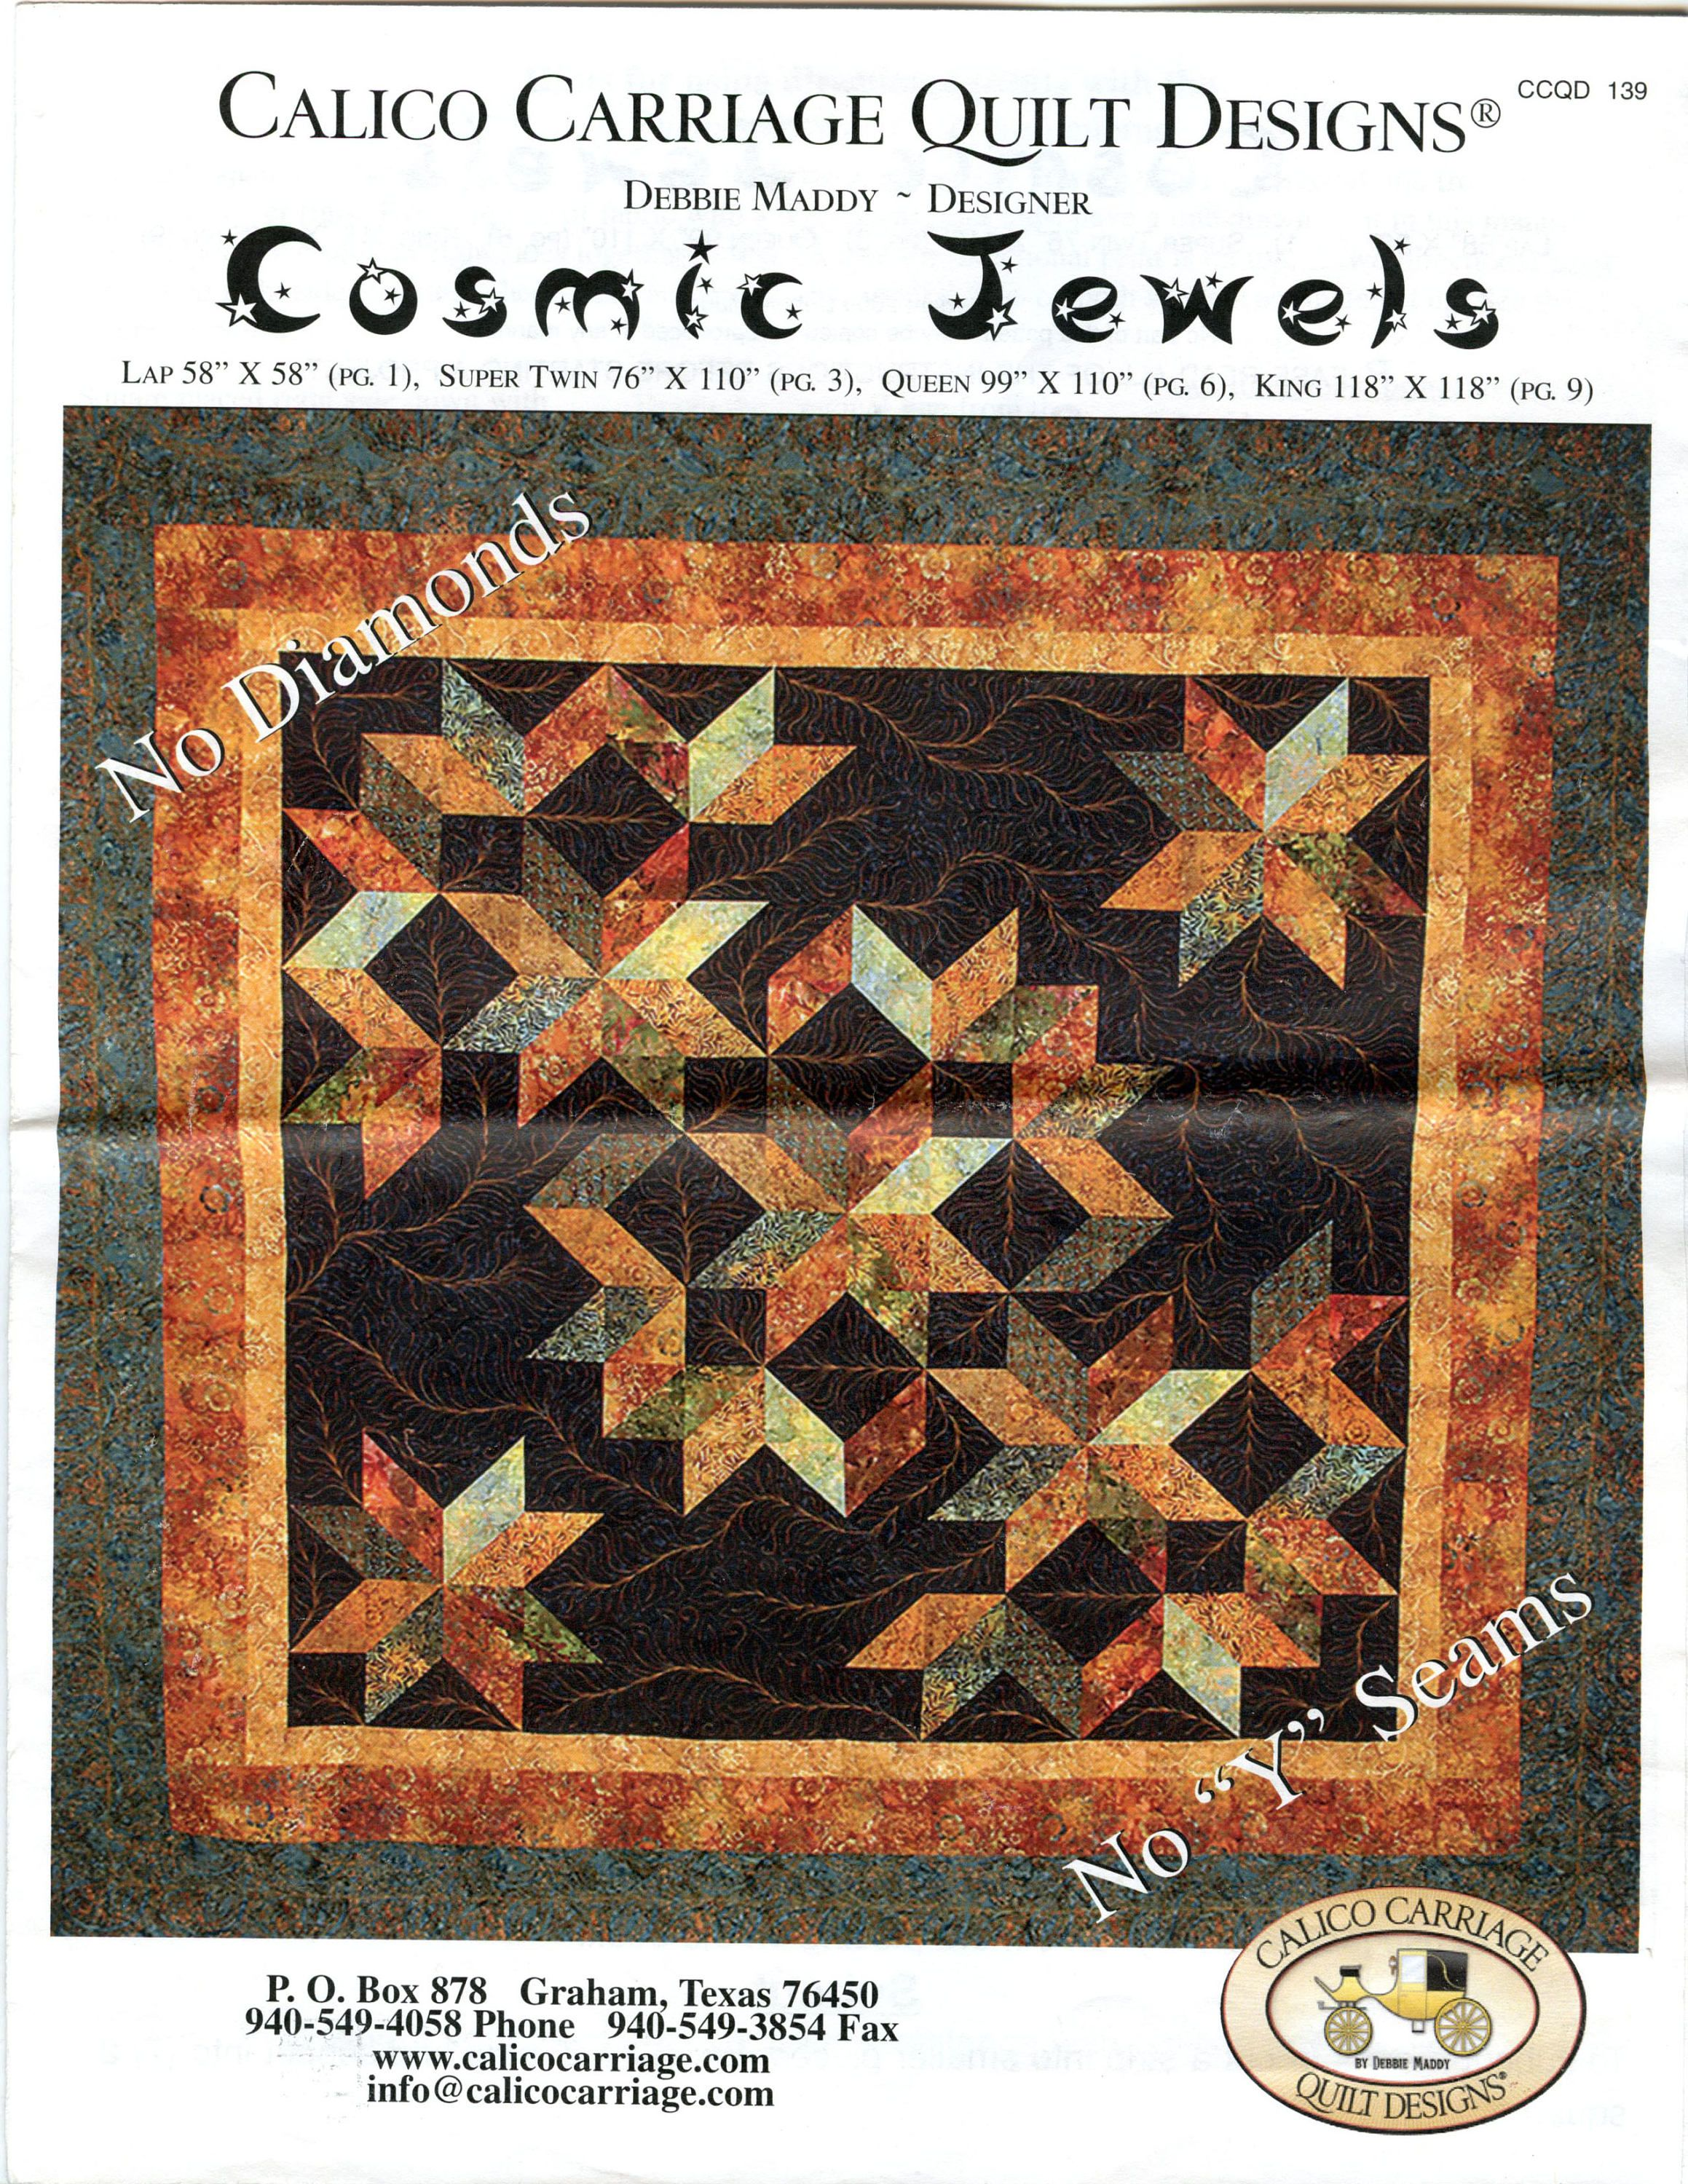 Cosmic Jewels Quilt Pattern by Debbie Maddy Calico Carriage Quilt ... : debbie maddy quilt patterns - Adamdwight.com